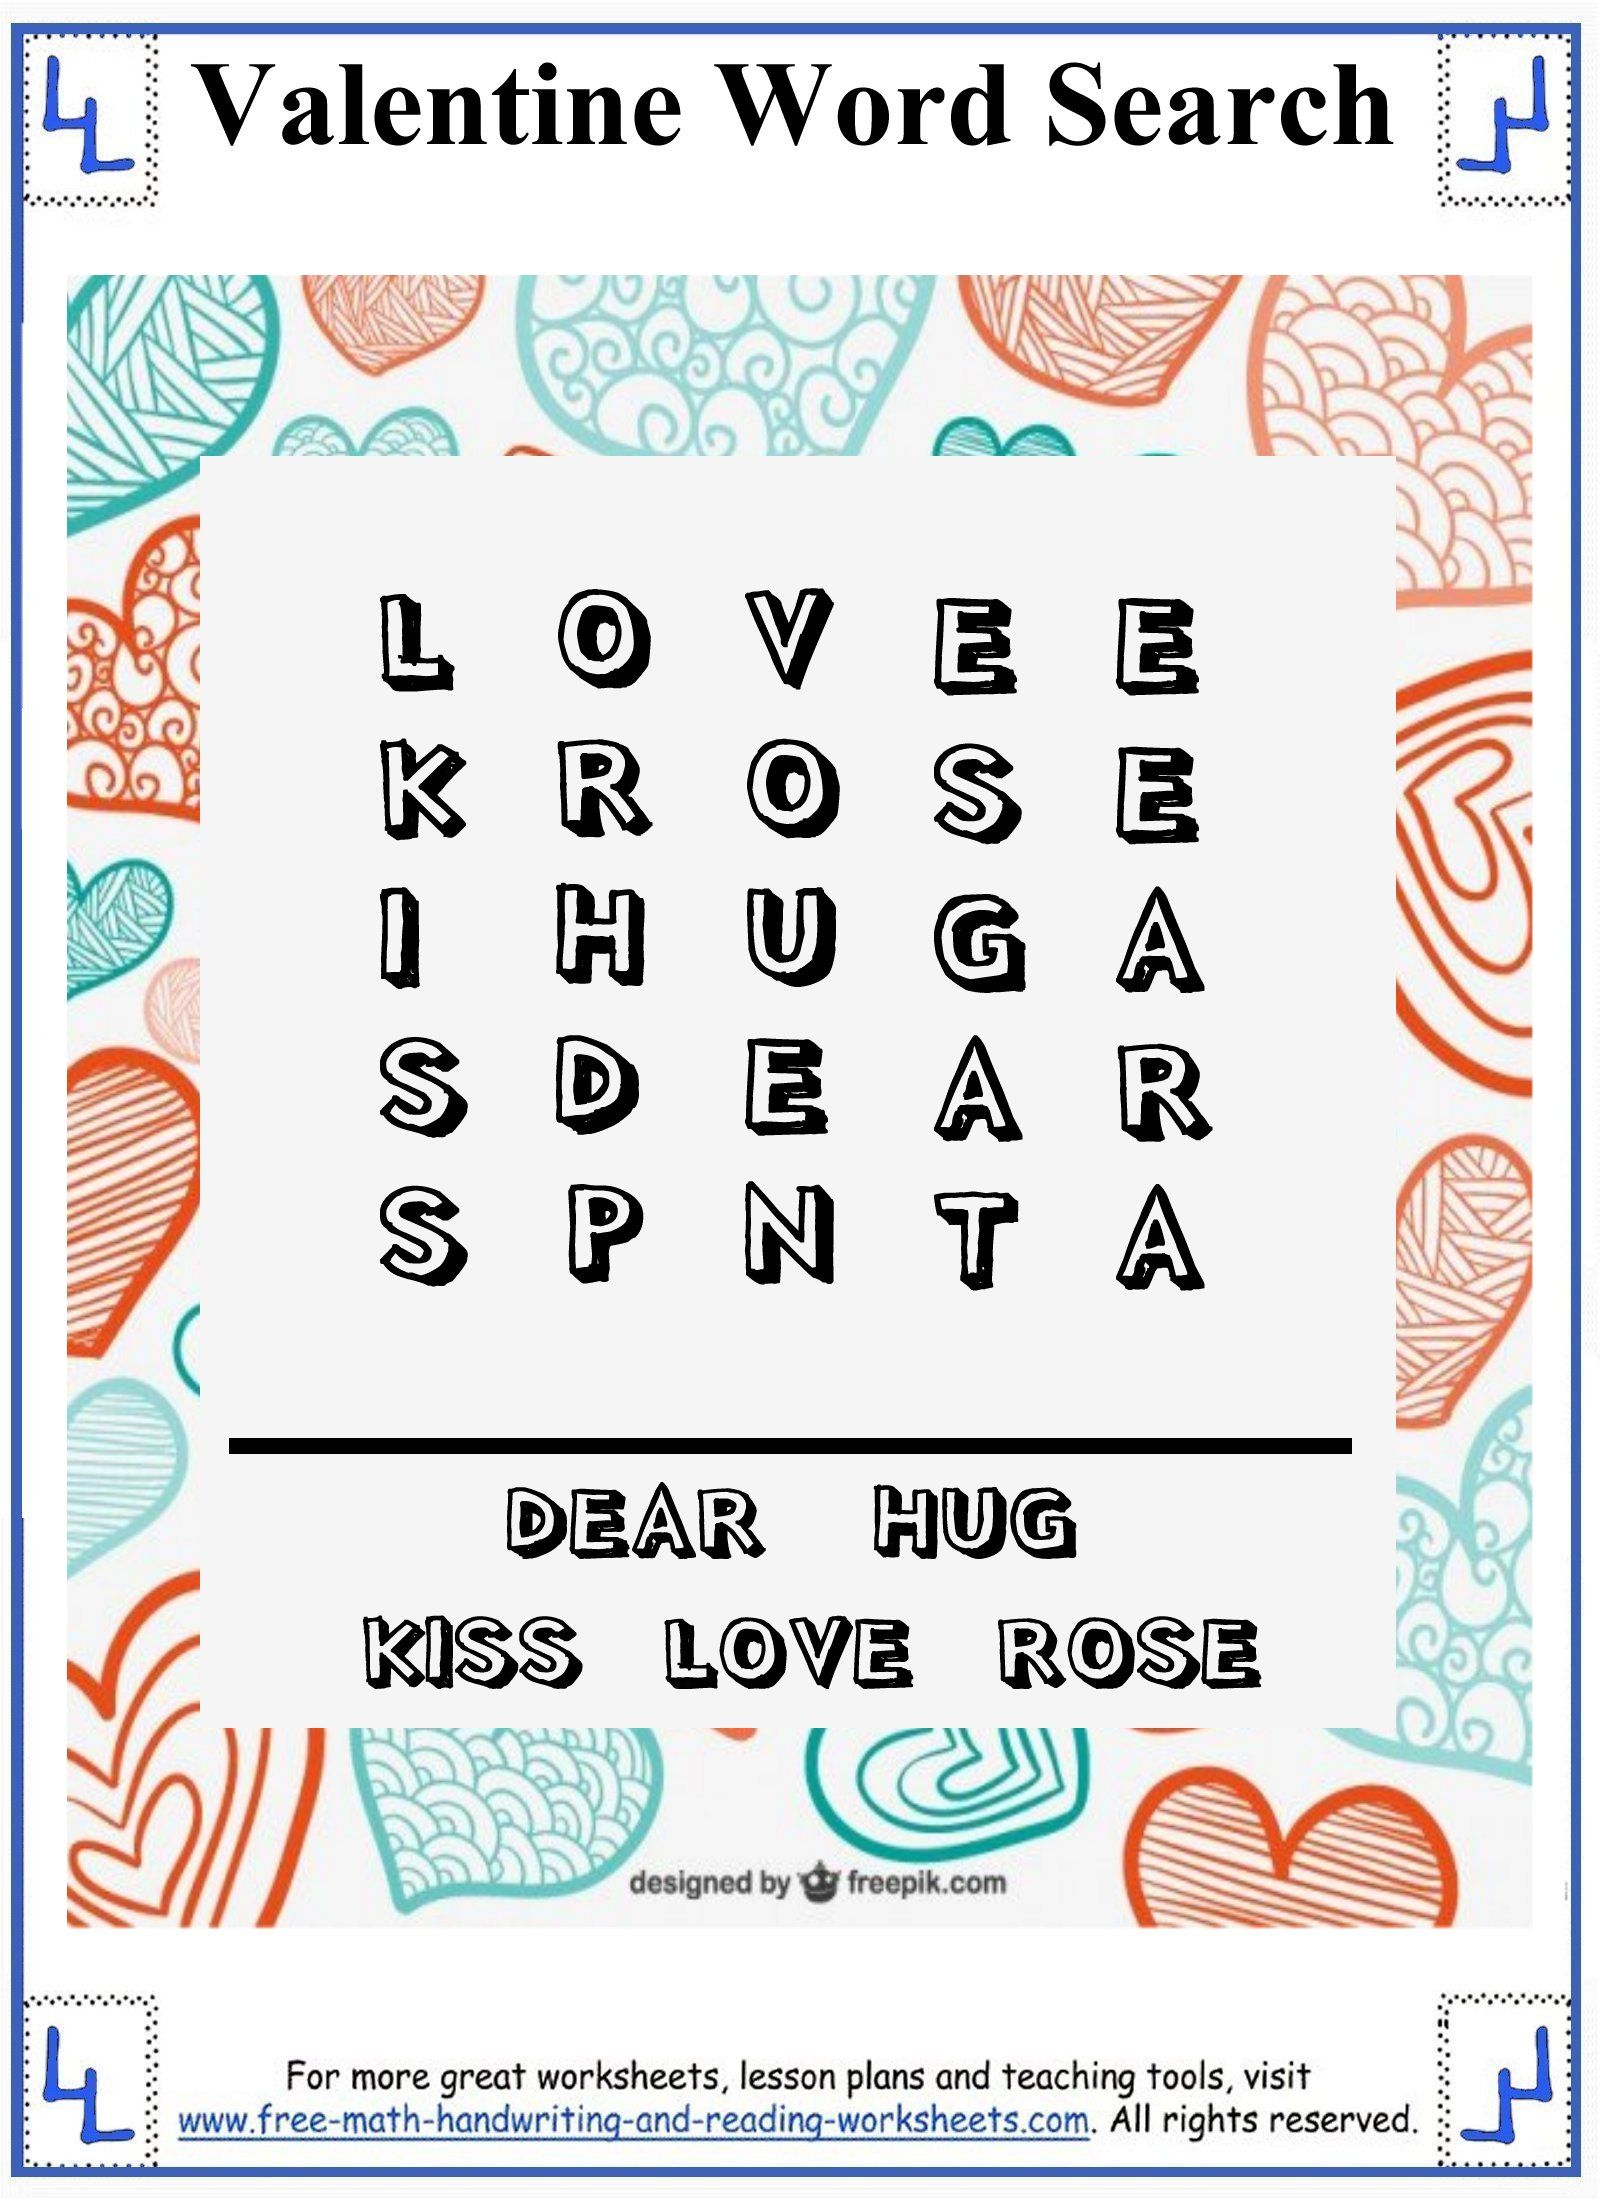 Valentine Word Search - Printable Puzzles - Easy 5x5 grid for ...